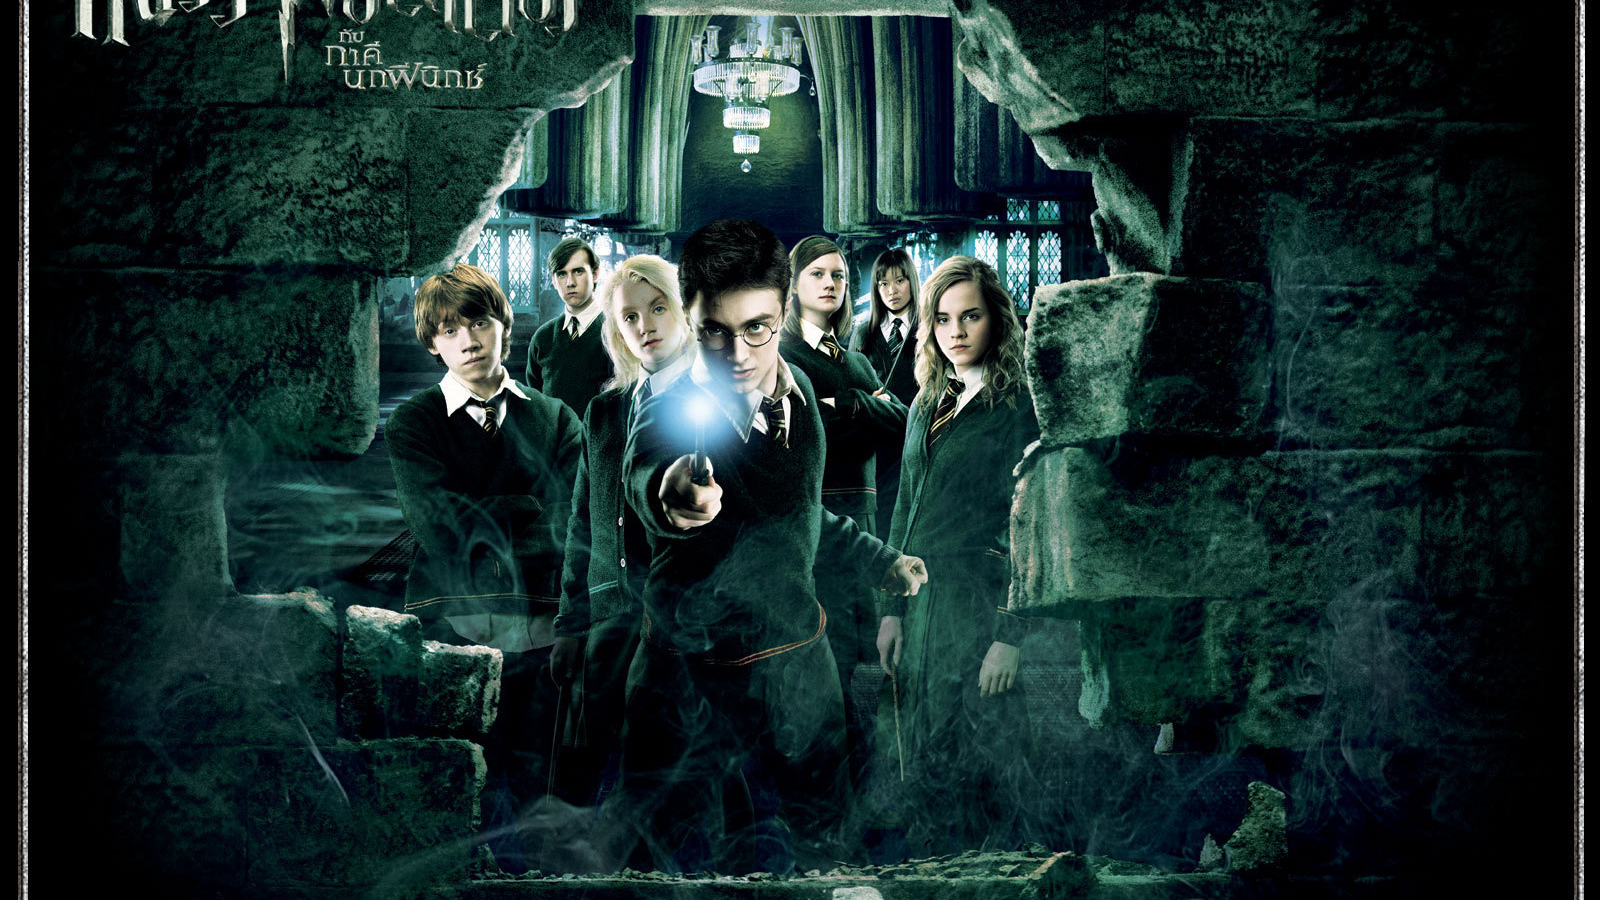 Free Download Harry Potter Desktop Backgrounds Wallpapers Backgrounds Images 1600x1200 For Your Desktop Mobile Tablet Explore 49 Harry Potter Wallpapers Free Download Free Harry Potter Wallpaper Harry Potter Screensavers And Wallpapers